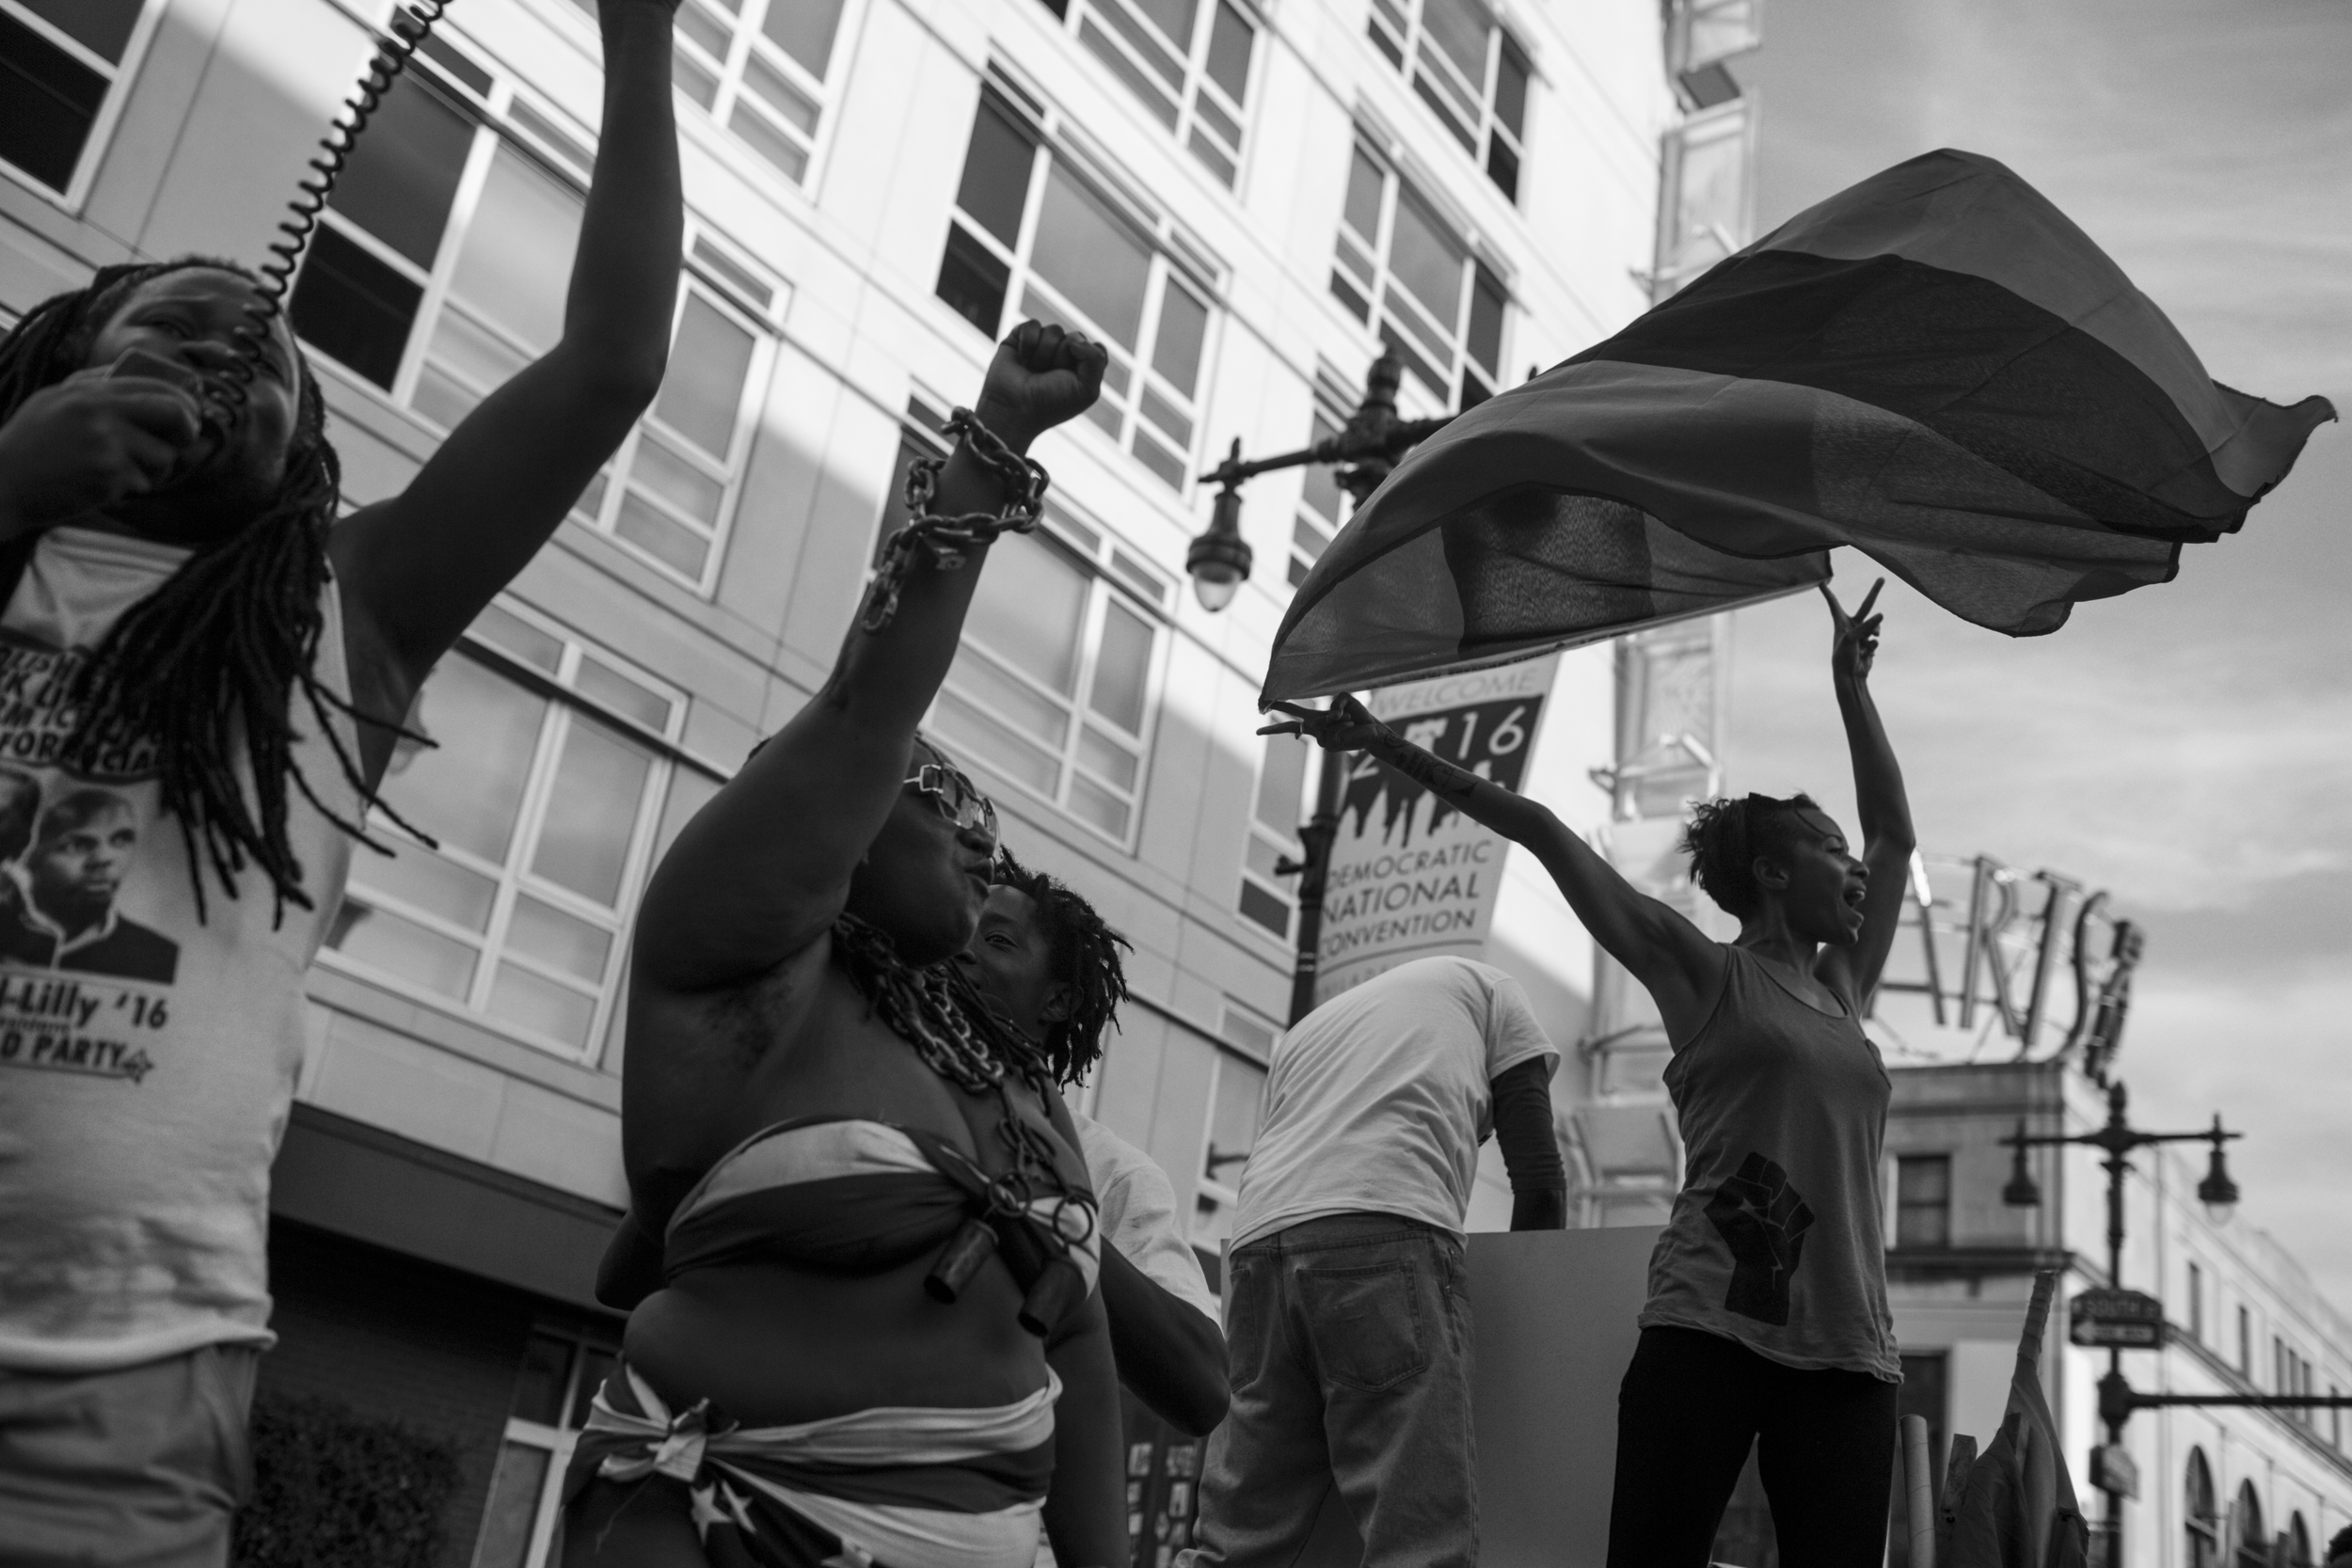 """26 July 2016 - Philadelphia, PA - Activists from the Black Lives Matter movement are guiding the """"Shut Down the DNC!"""" march and holding speeches. Photo: Cédric von Niederhäusern"""